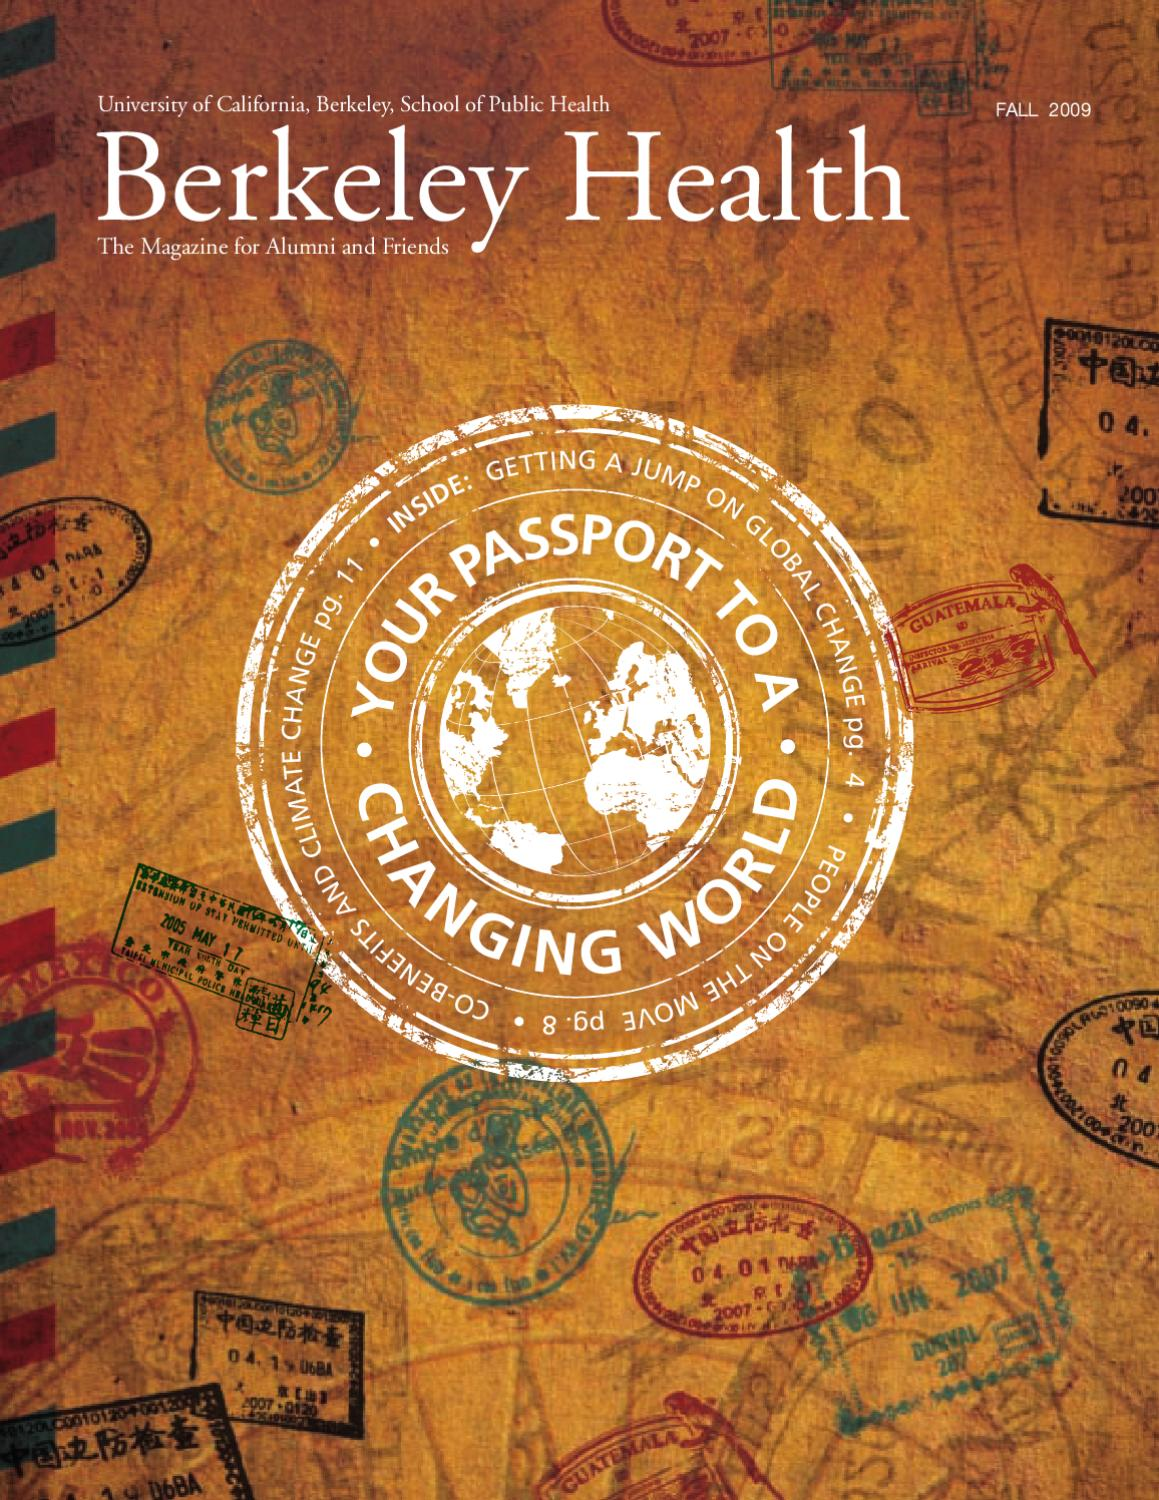 Fall 2009 - Your Passport to a Changing World - Berkeley